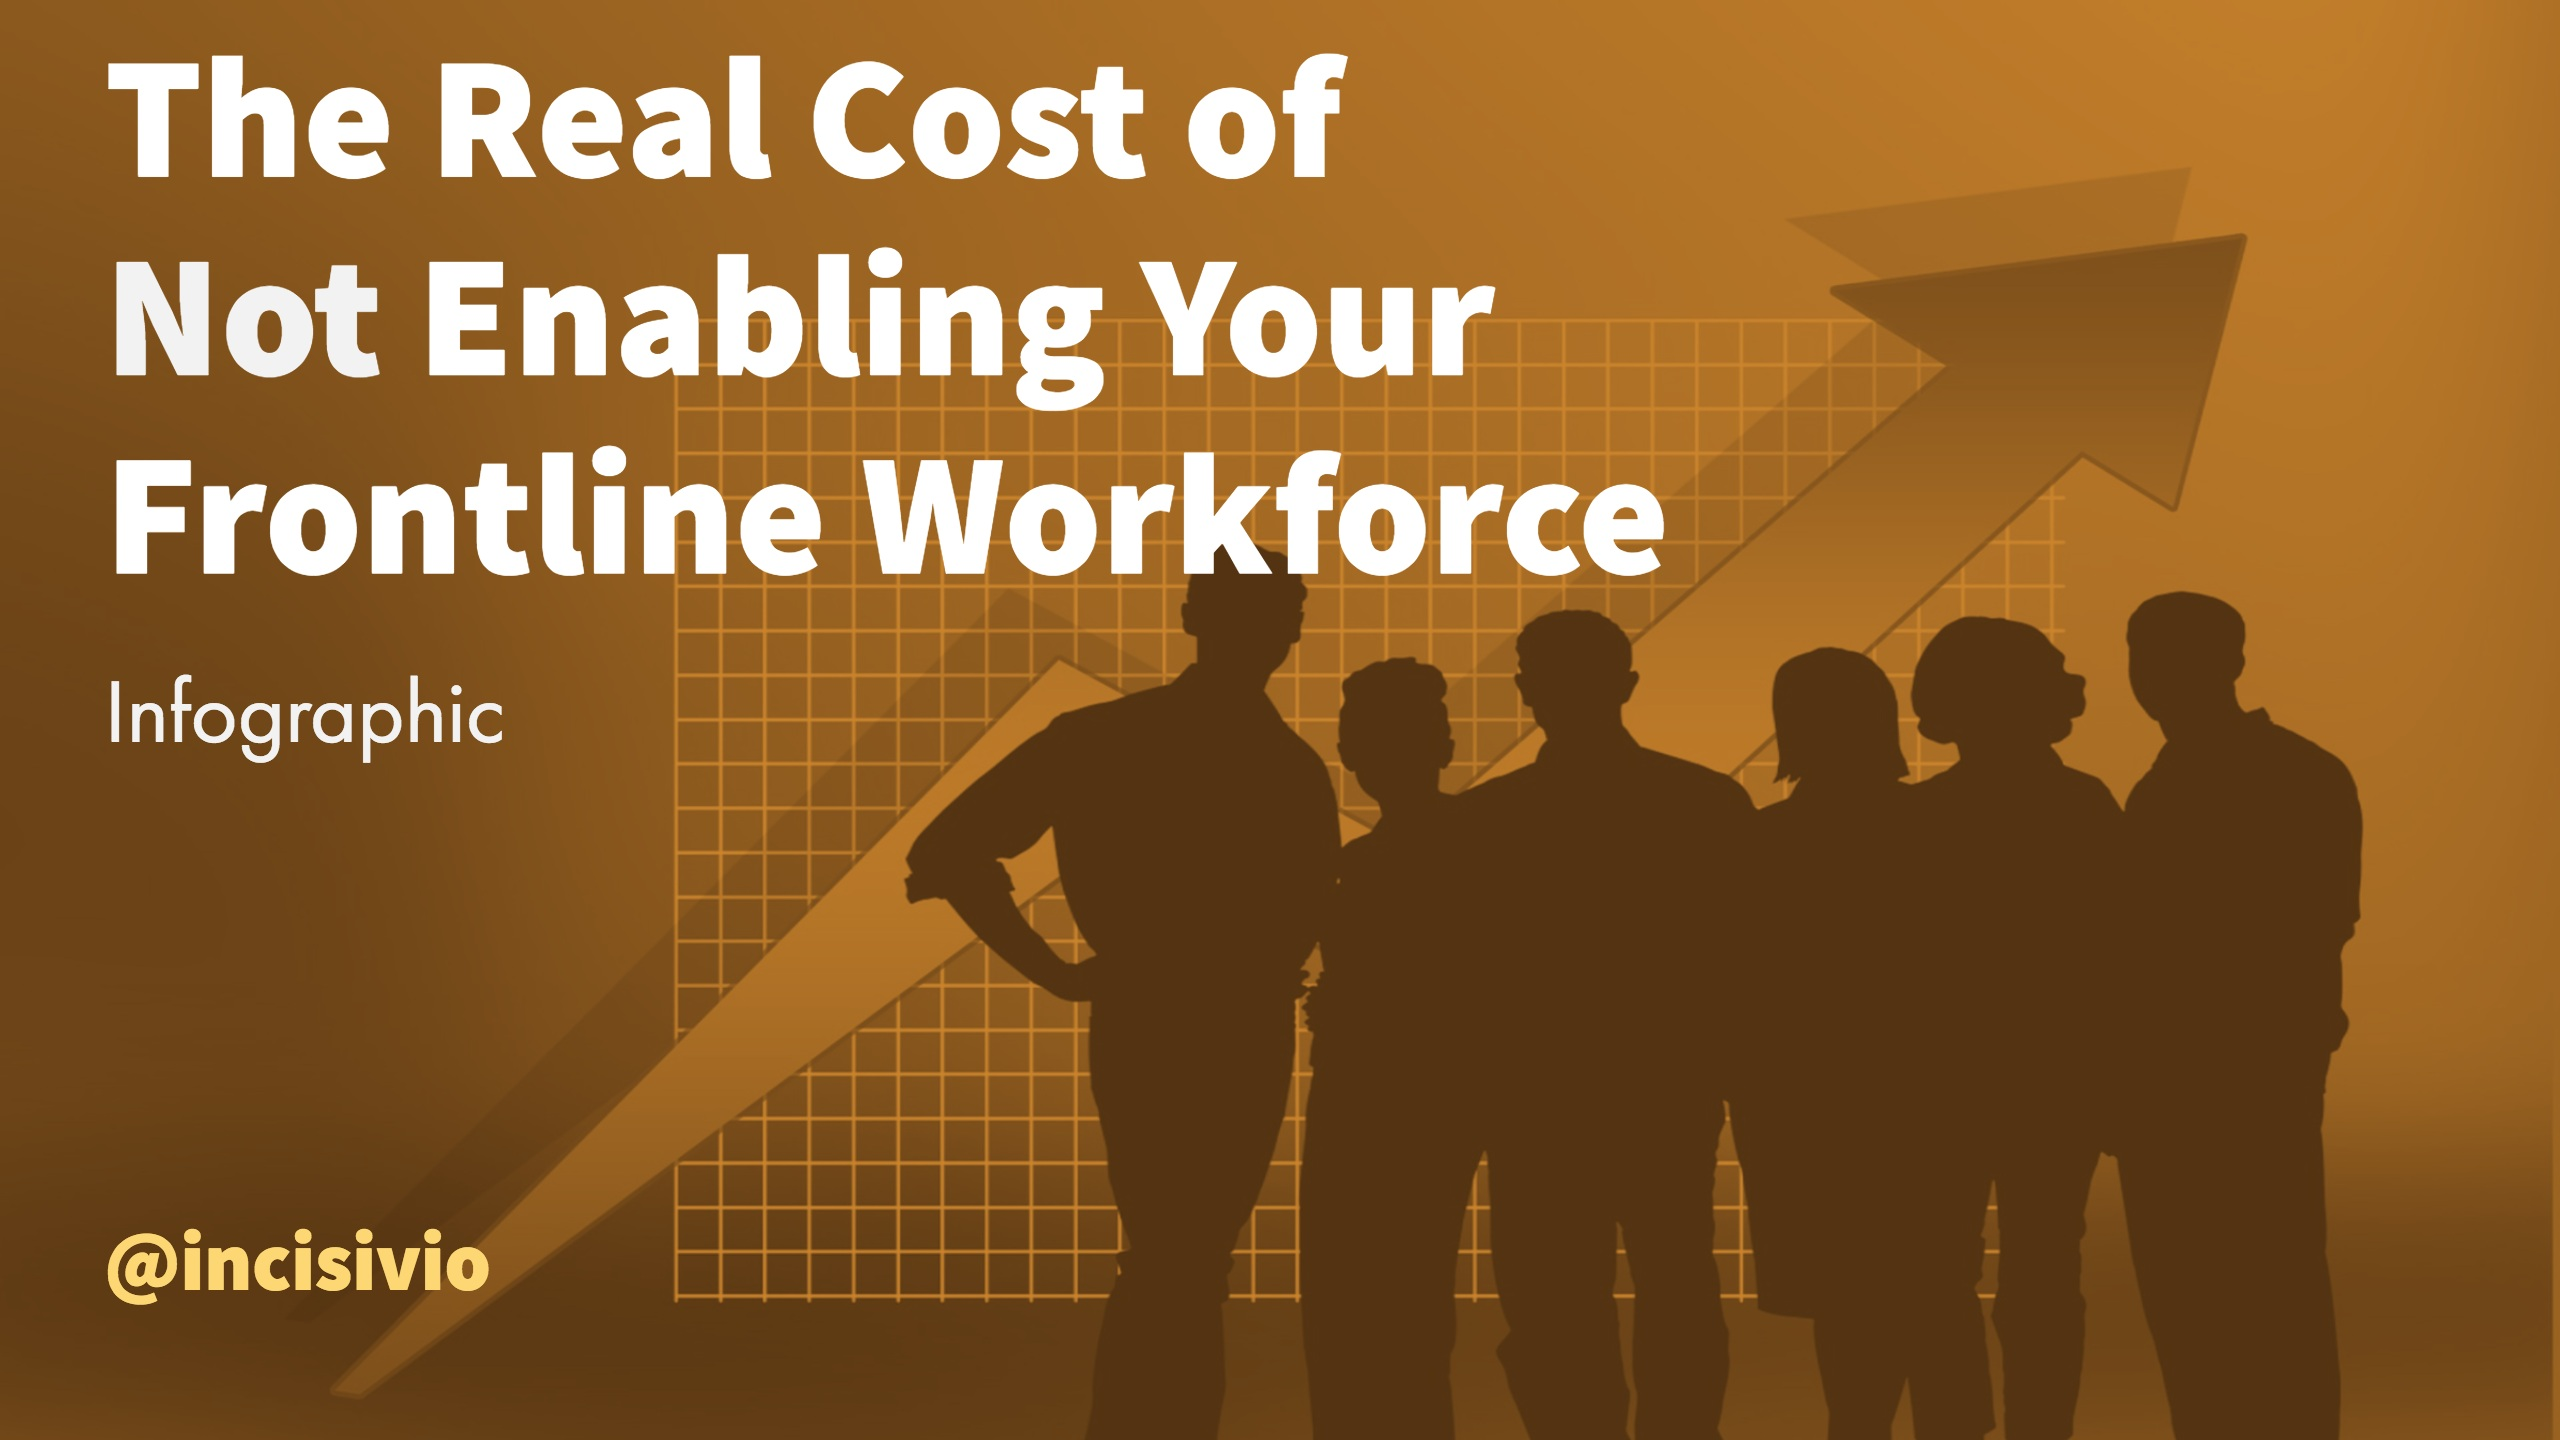 The Real Cost of Not Enabling Your Fronline Workforce, Infographic